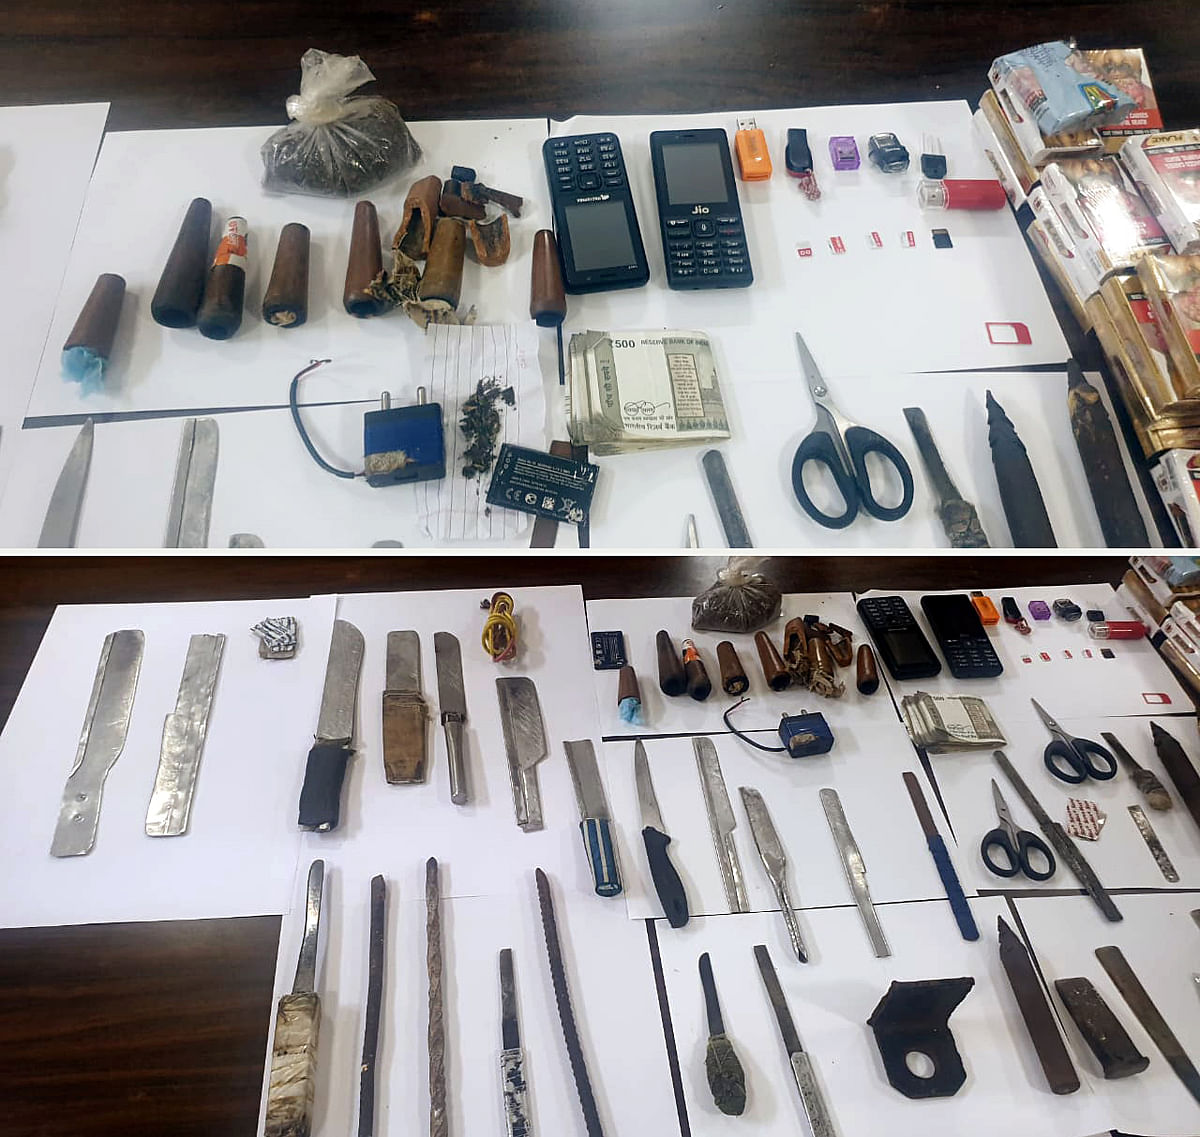 Karnataka, July 10 (ANI): Combo picture of mobile phones, sim cards, and other essentials seized by Bengaluru Central Crime Branch (CCB) after conducting the raid and search operations at Parappana Agrahara jail, in Bengaluru on Saturday.